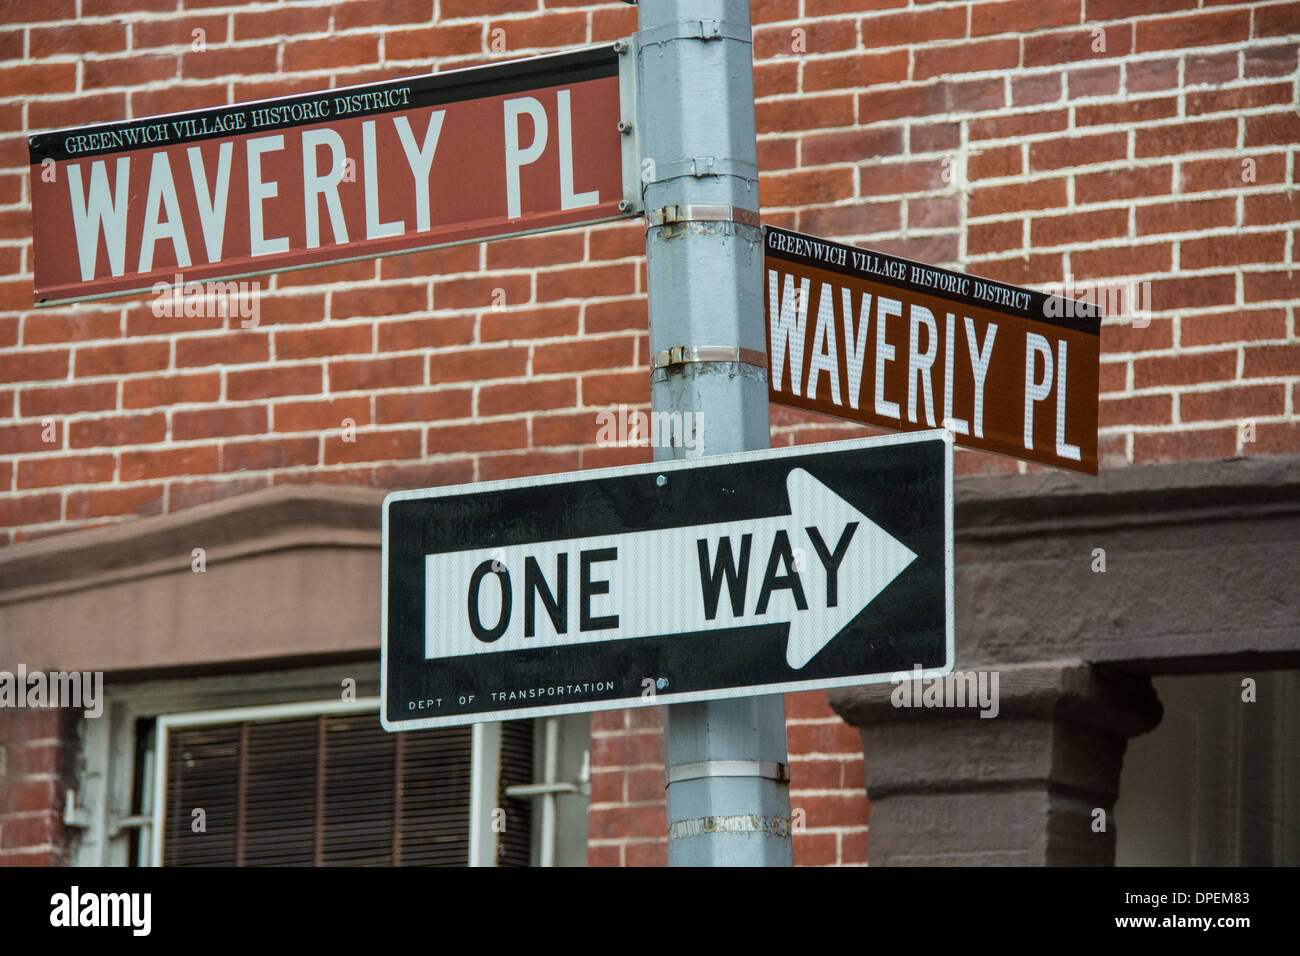 Street Signs at the corner of Waverly Place and Waverly Place in Greenwich Village, New York City, USA Stock Photo